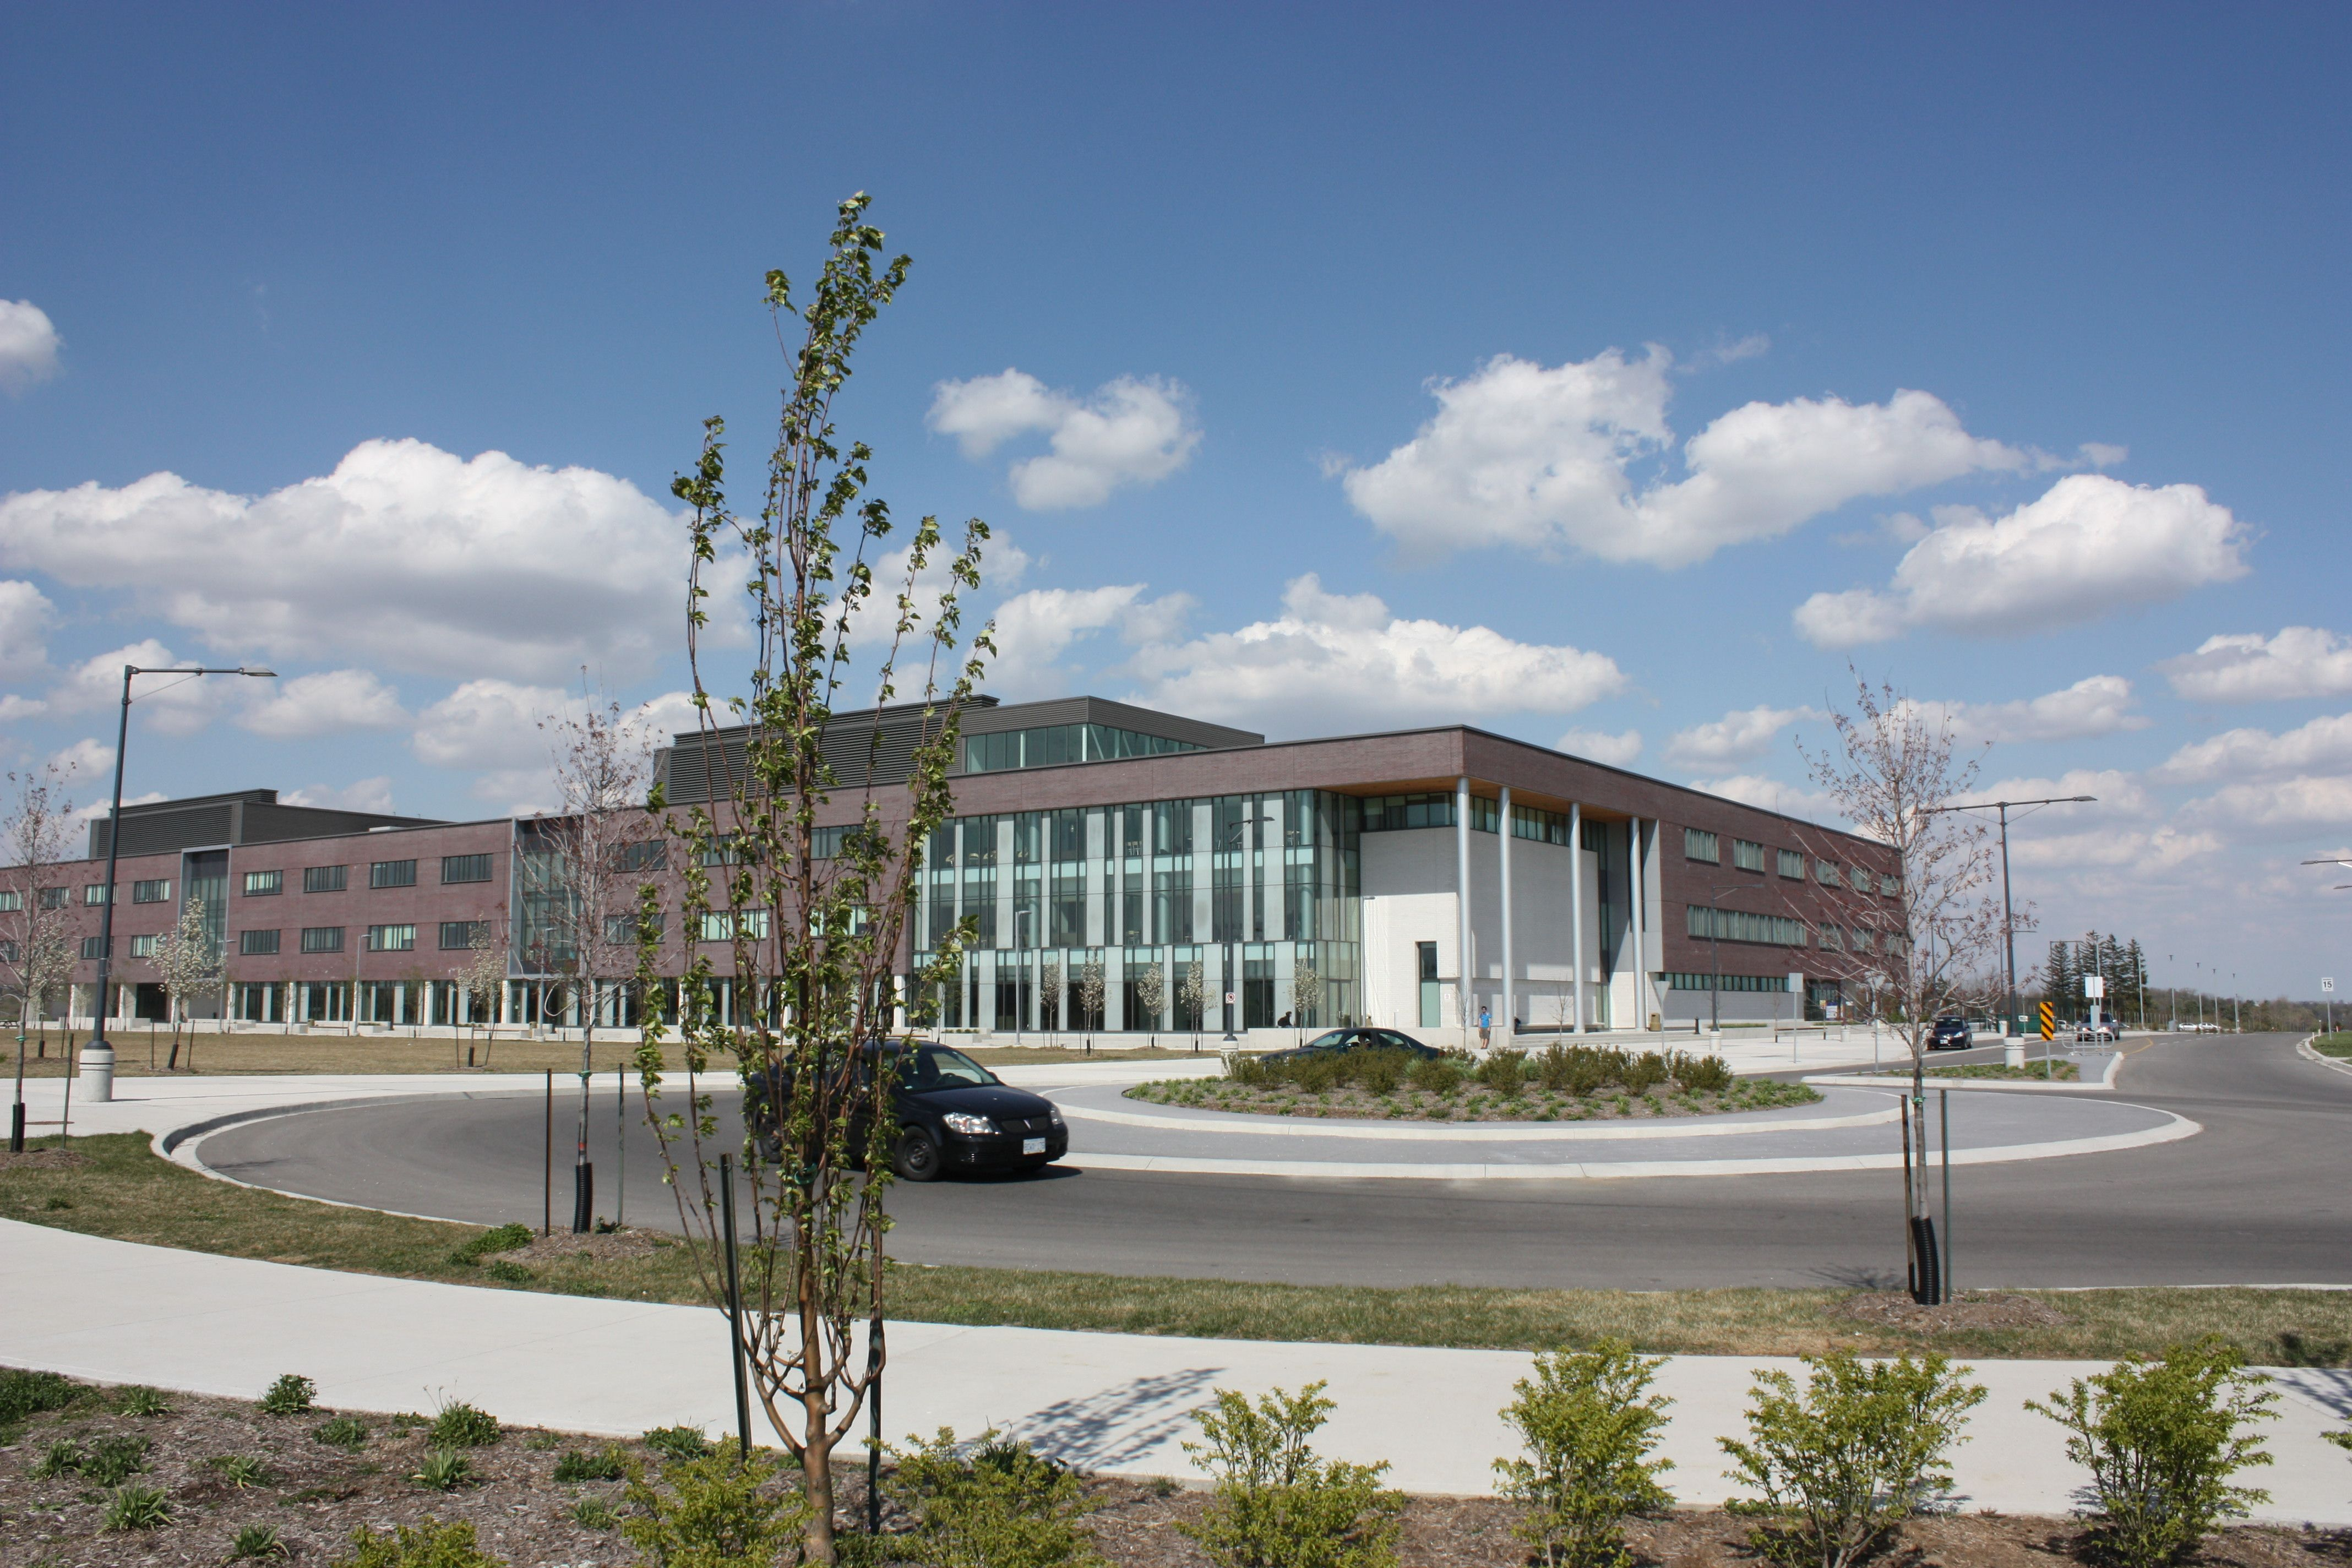 The view from afar of Cambridge Campus at Conestoga College ...